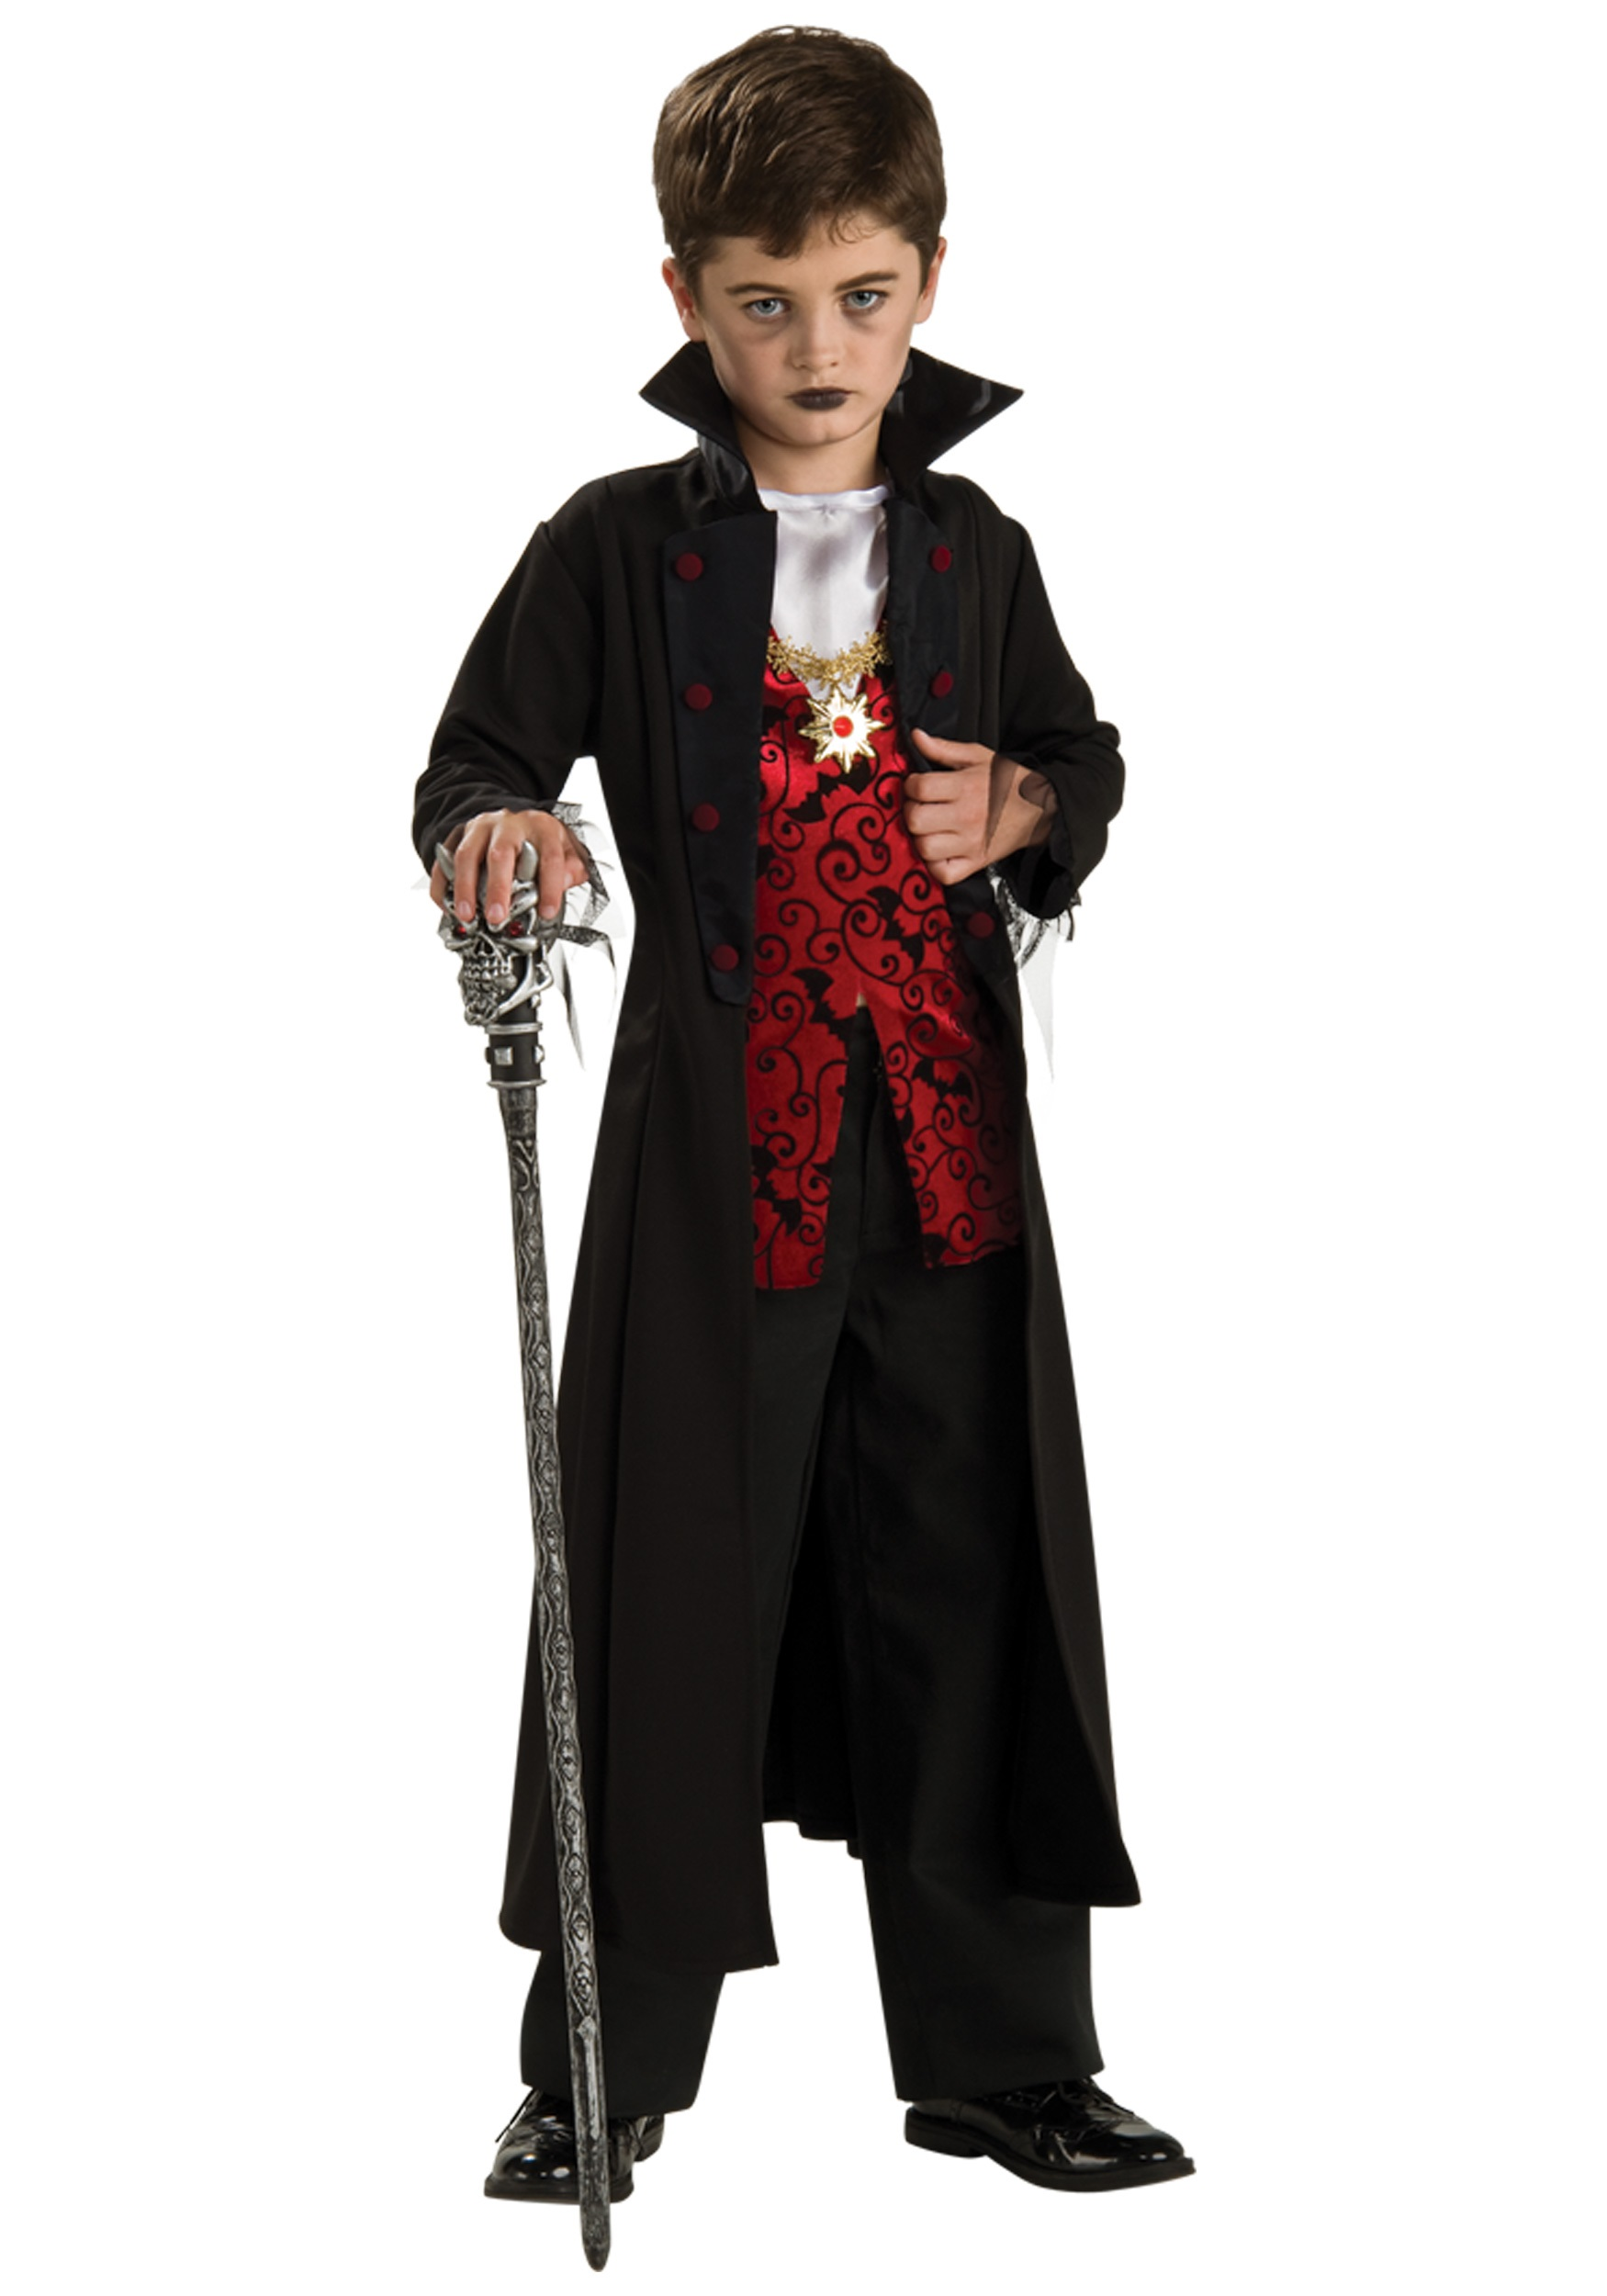 Child Count Dracula Costume  sc 1 st  Halloween Costume Ideas & Child Count Dracula Costume - Vampire Costumes for Boys